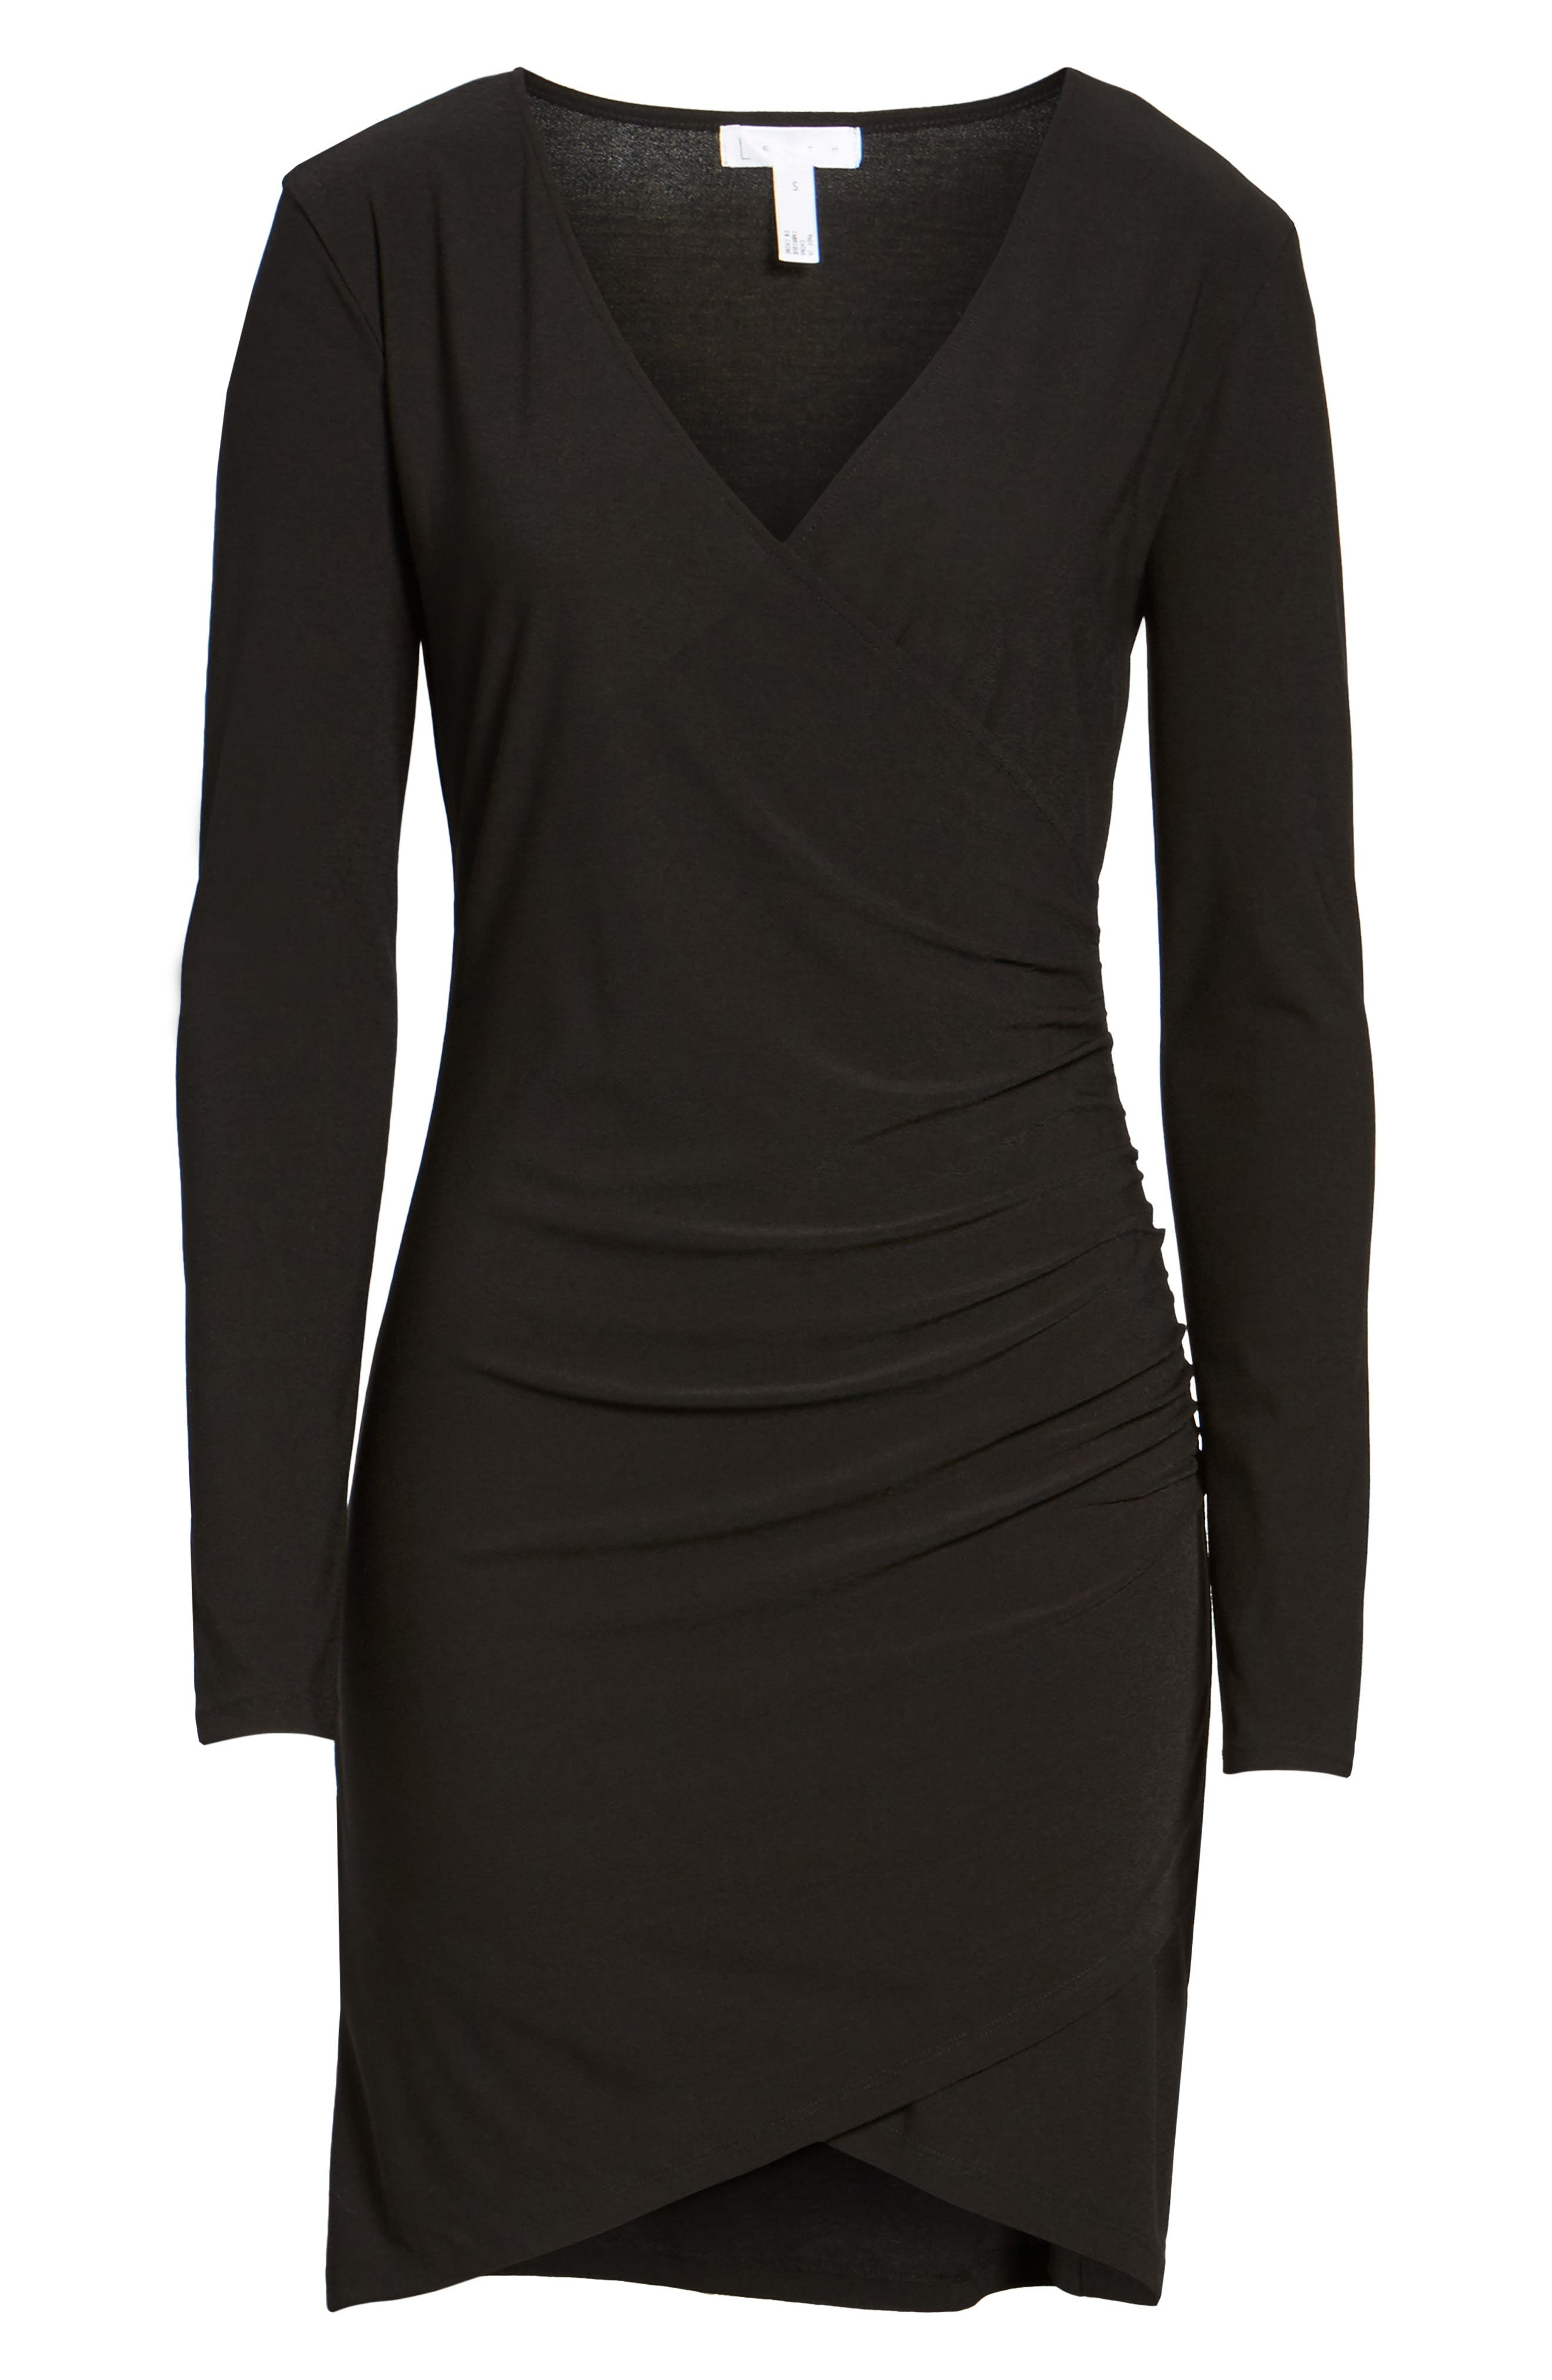 Ruched Sheath Dress,                             Alternate thumbnail 6, color,                             001